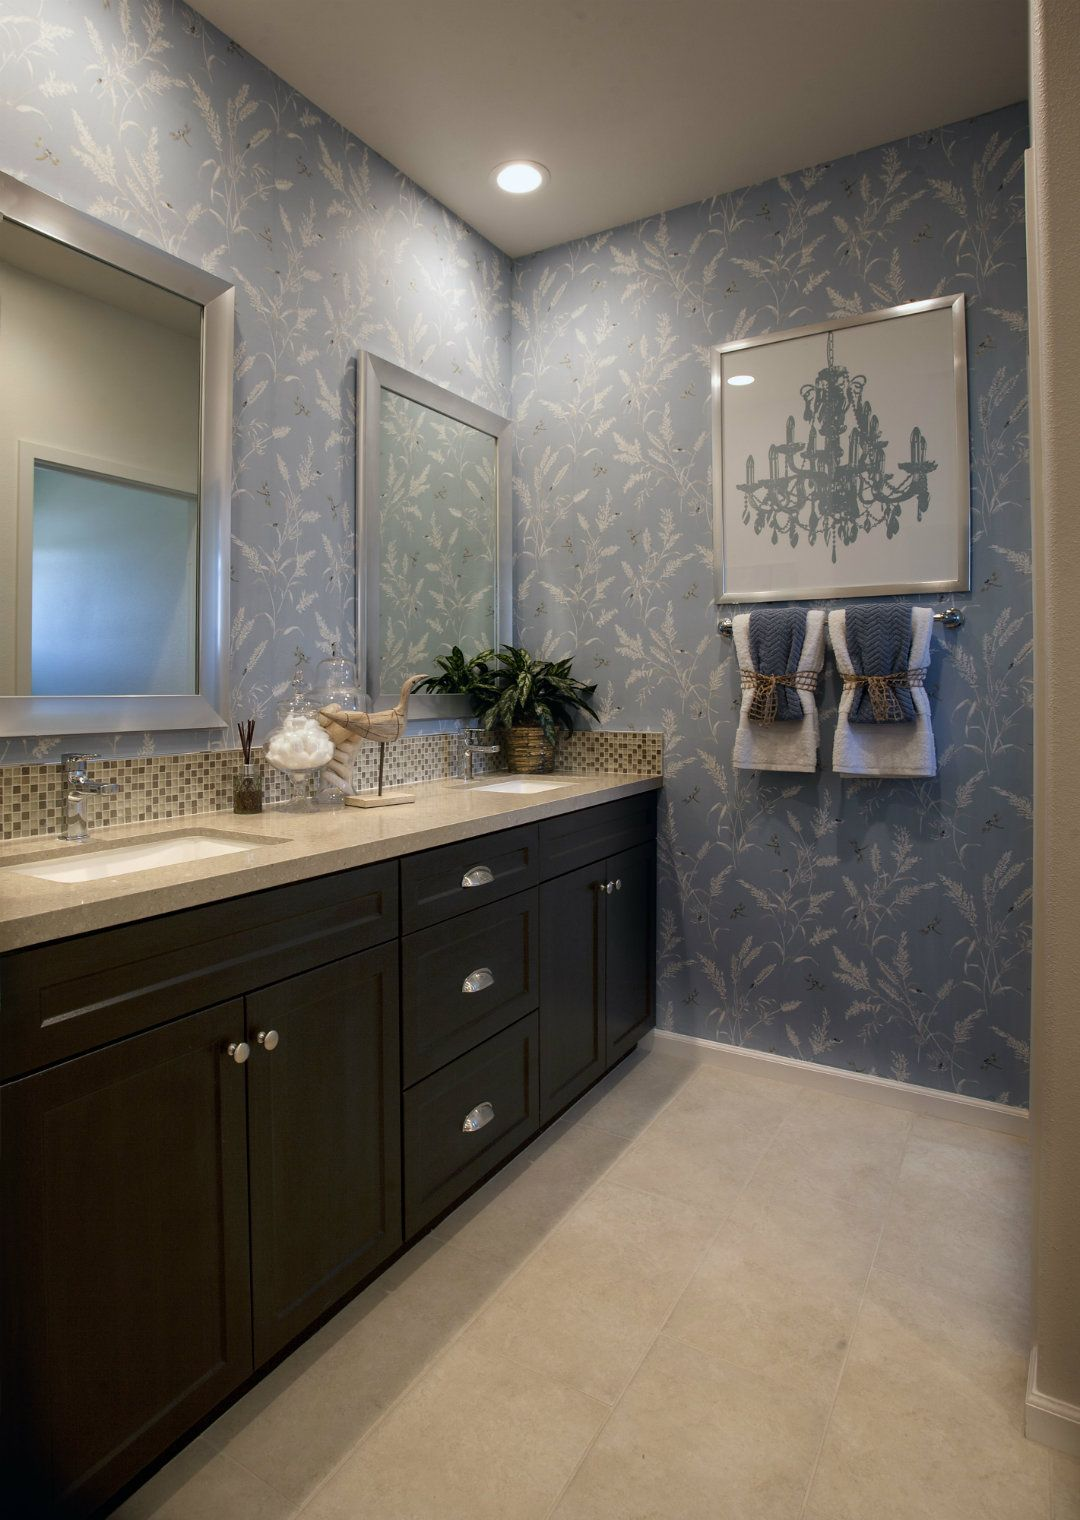 The Heritage Collection New Homes For Sale In Van Nuys San Fernando Valley Los Angeles By California Home With Images California Homes Home Builders New Homes For Sale